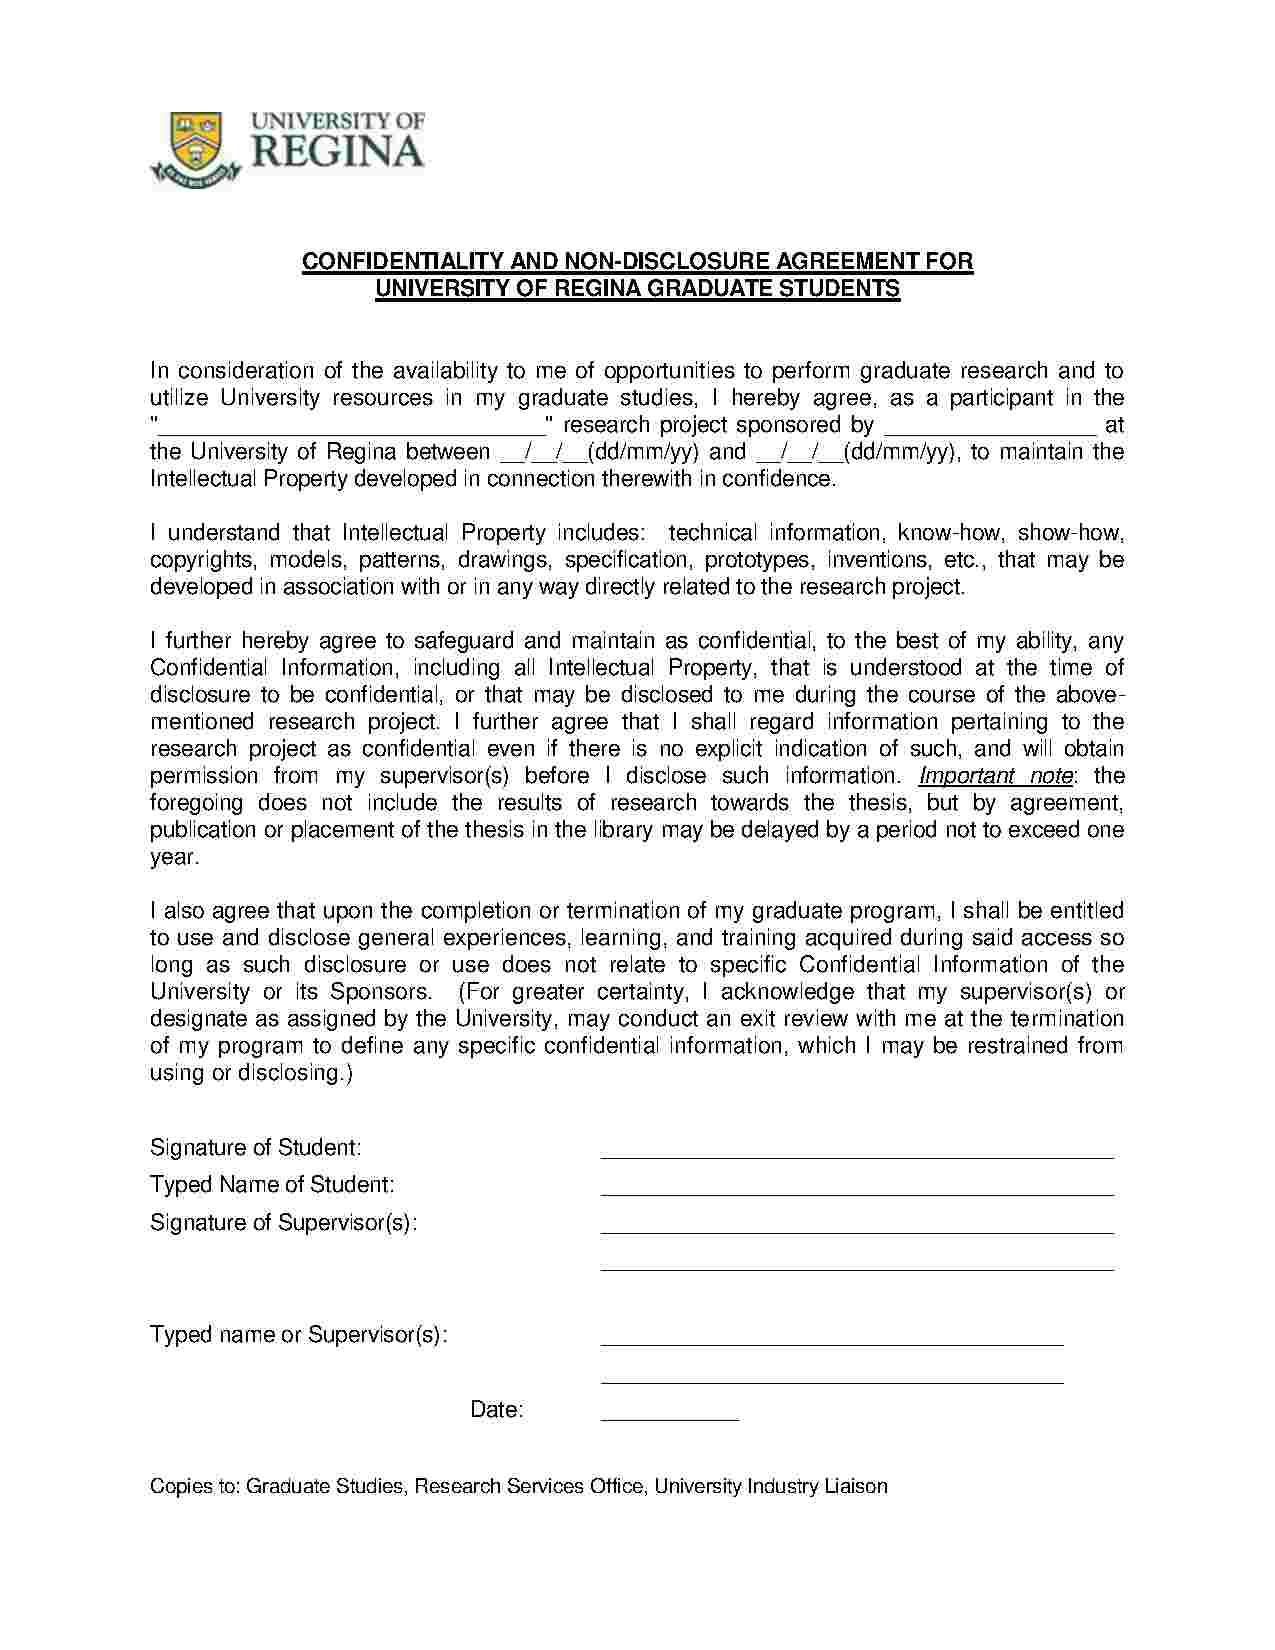 Free Non Disclosure Agreement Form Download Non Disclosure Agreement Style 4 Template For Free At